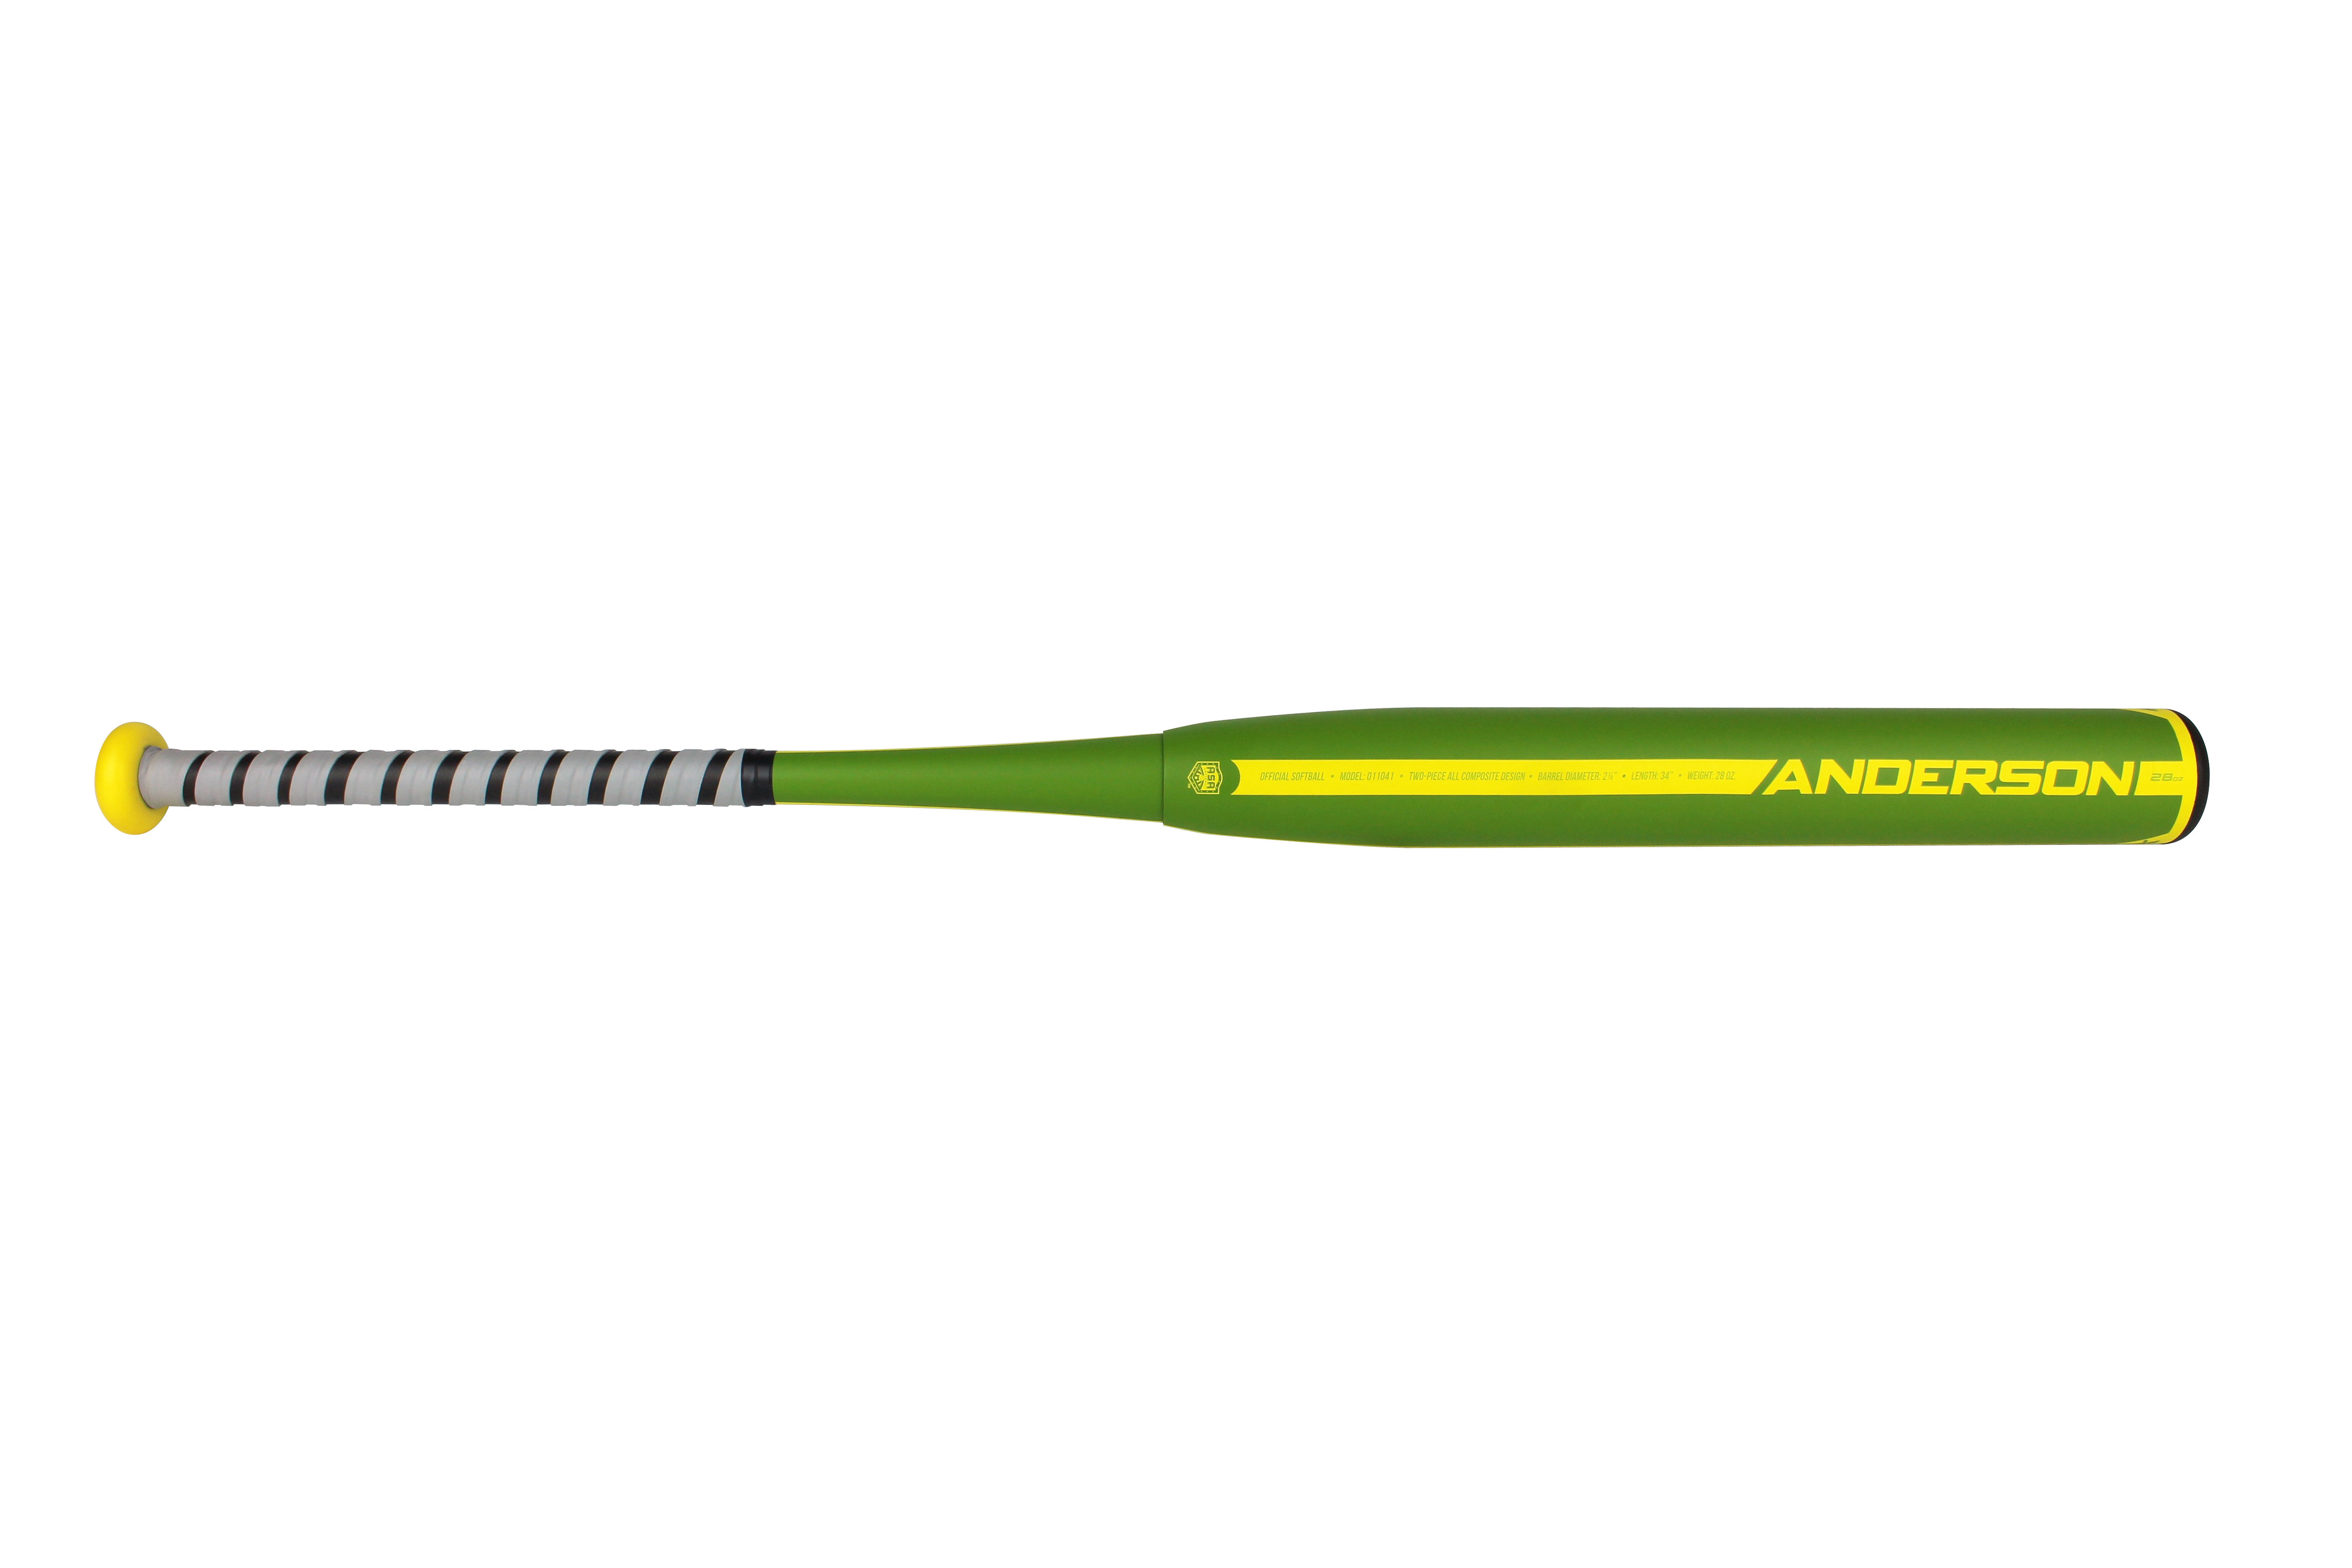 Anderson bat company baseball softball bats california the 2017 ambush slow pitch two piece composite bat is made to give hitters just the right balance of power plus speed with a thin whip handle for sciox Gallery